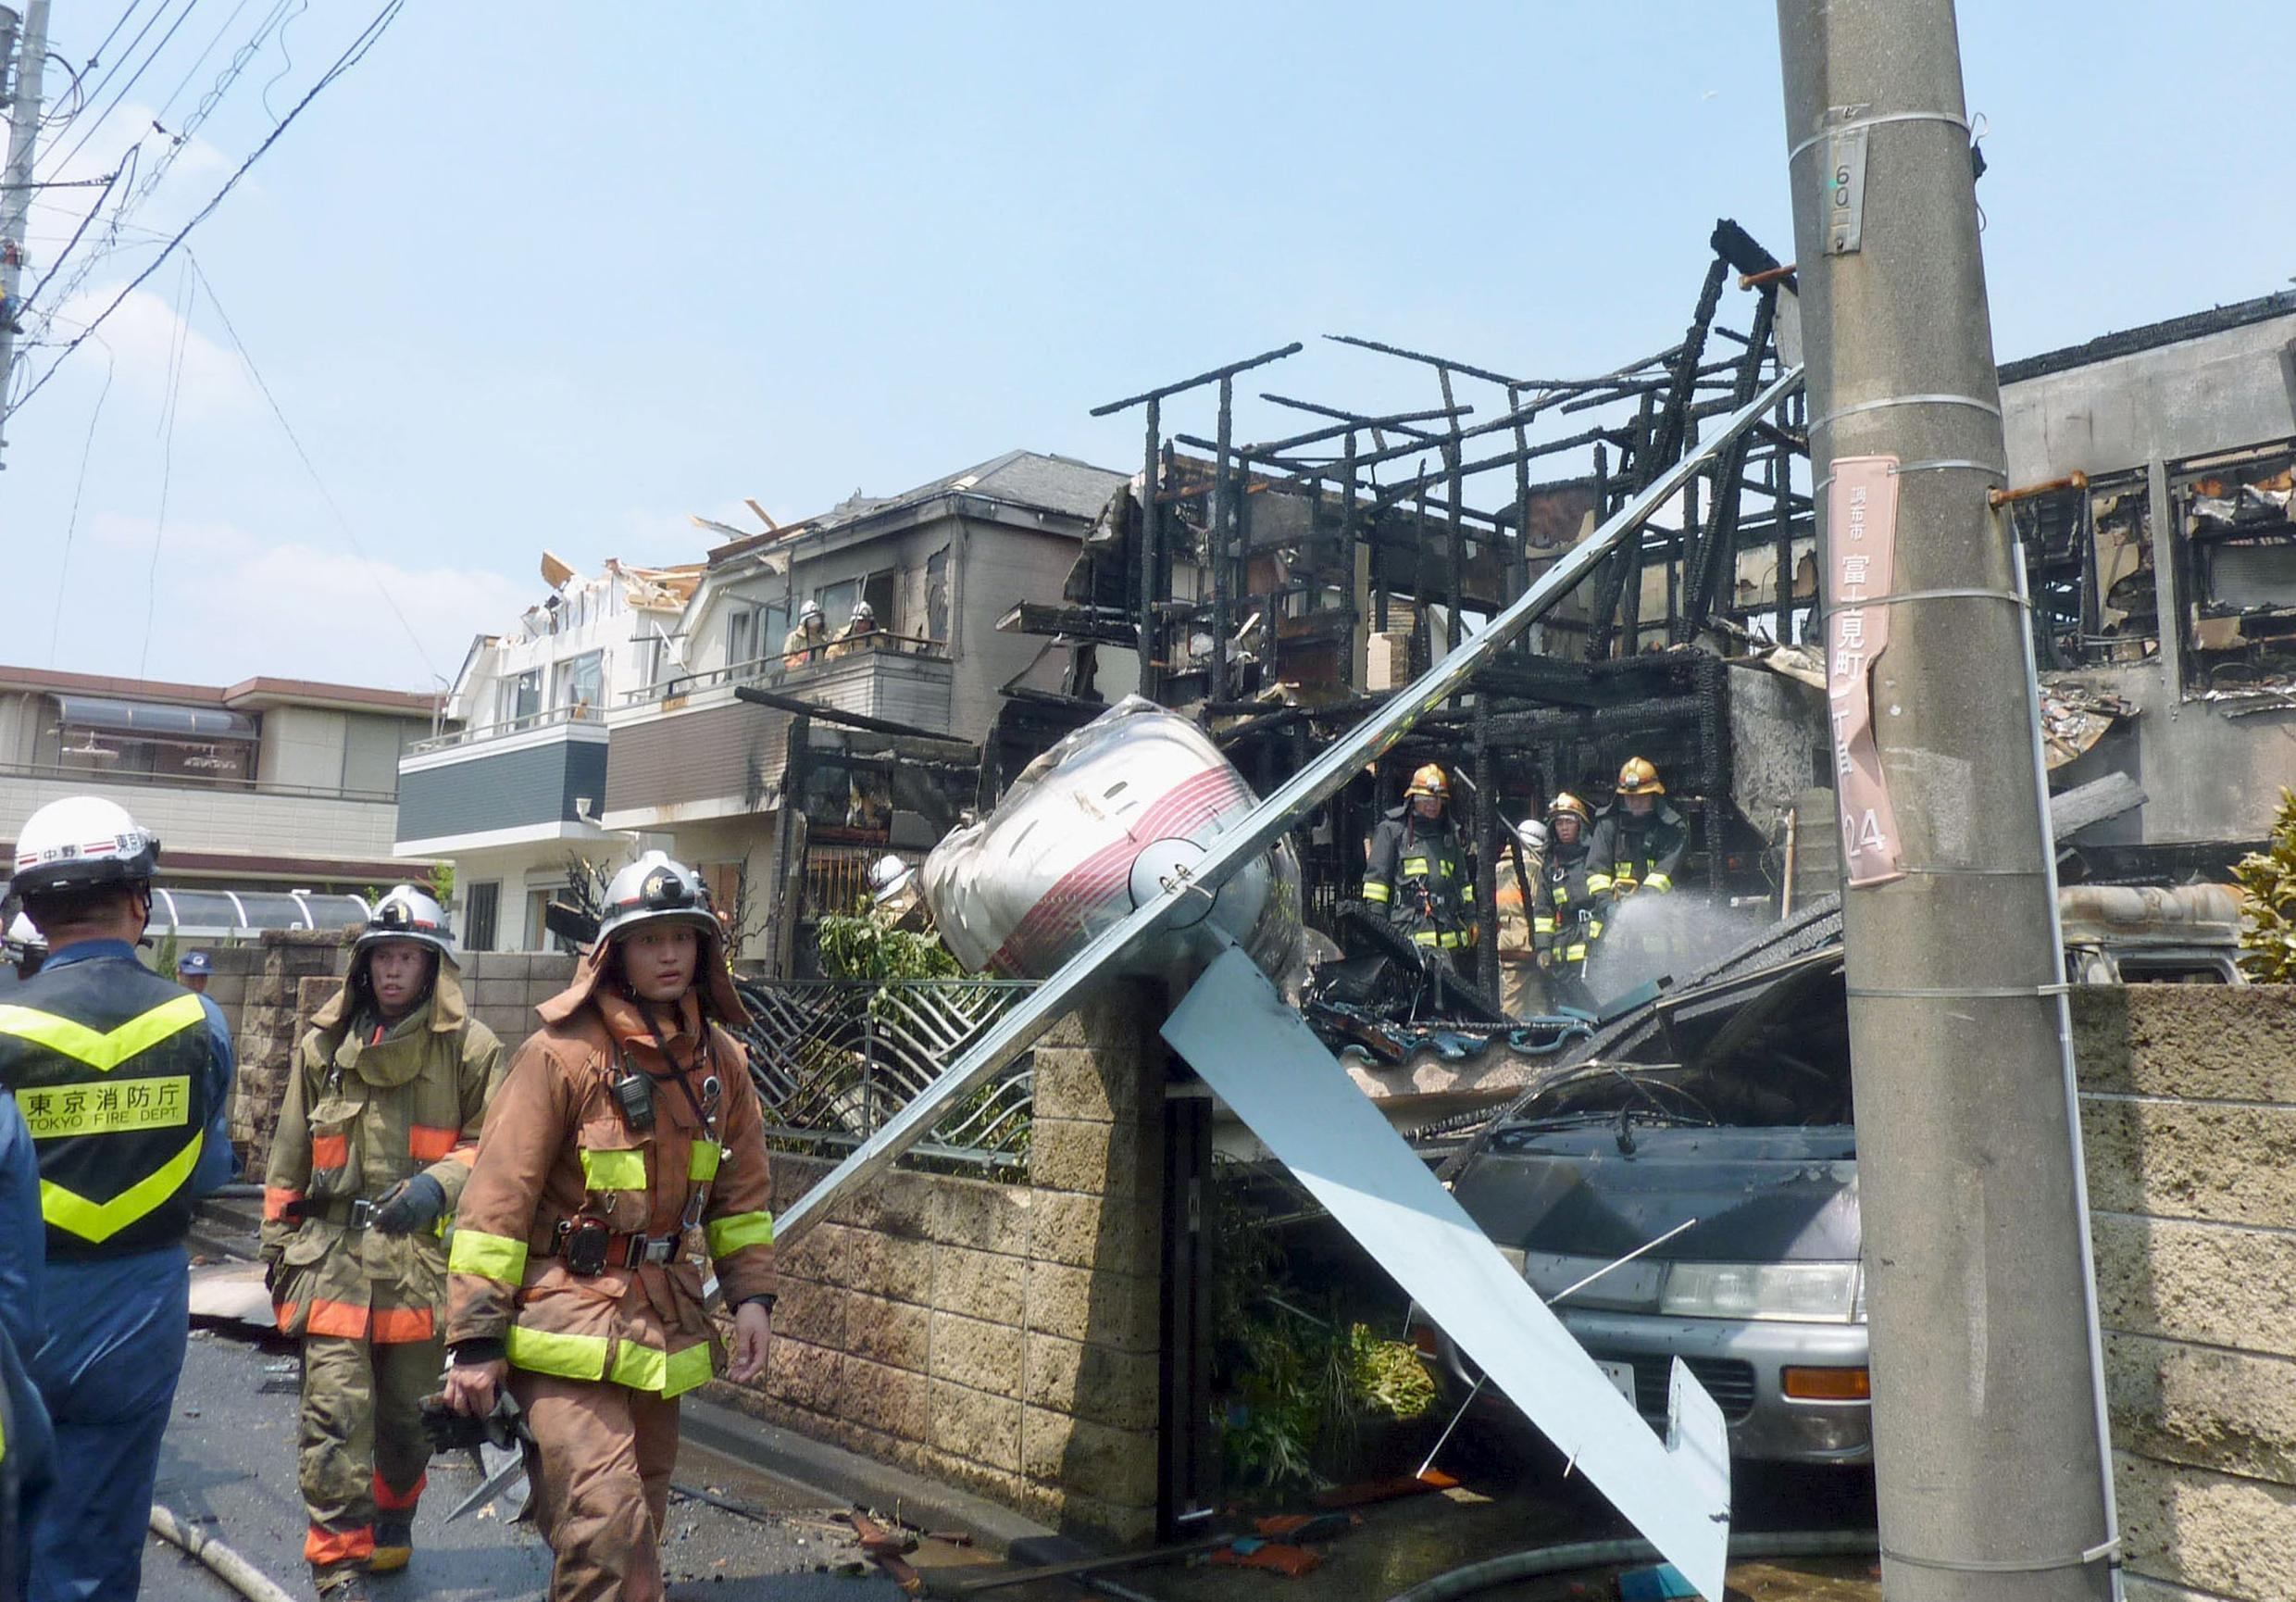 The tail section of a crashed light plane and burning house are seen after the plane went down in a residential area in Tokyo July 26 2015